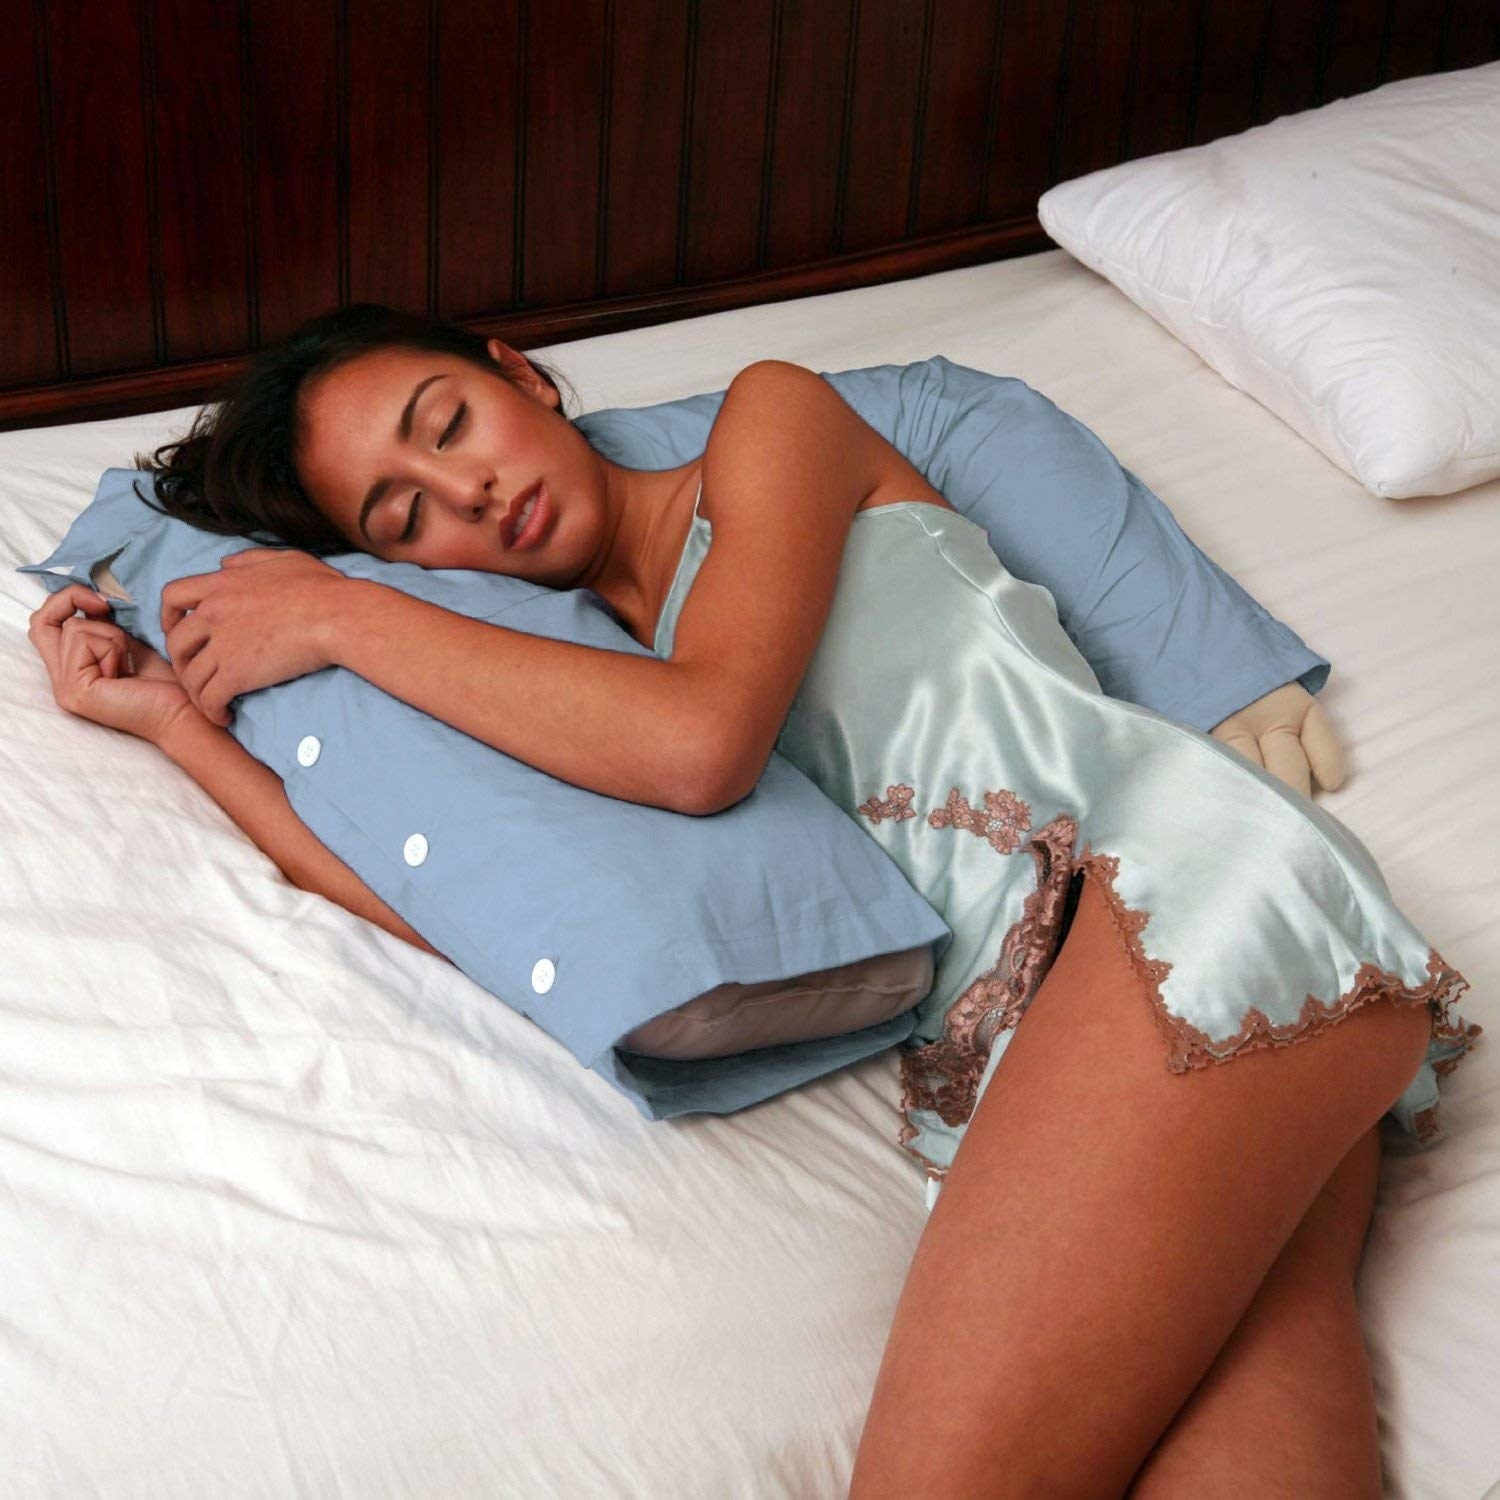 A model being spooned by the pillow shaped like a torso with an arm